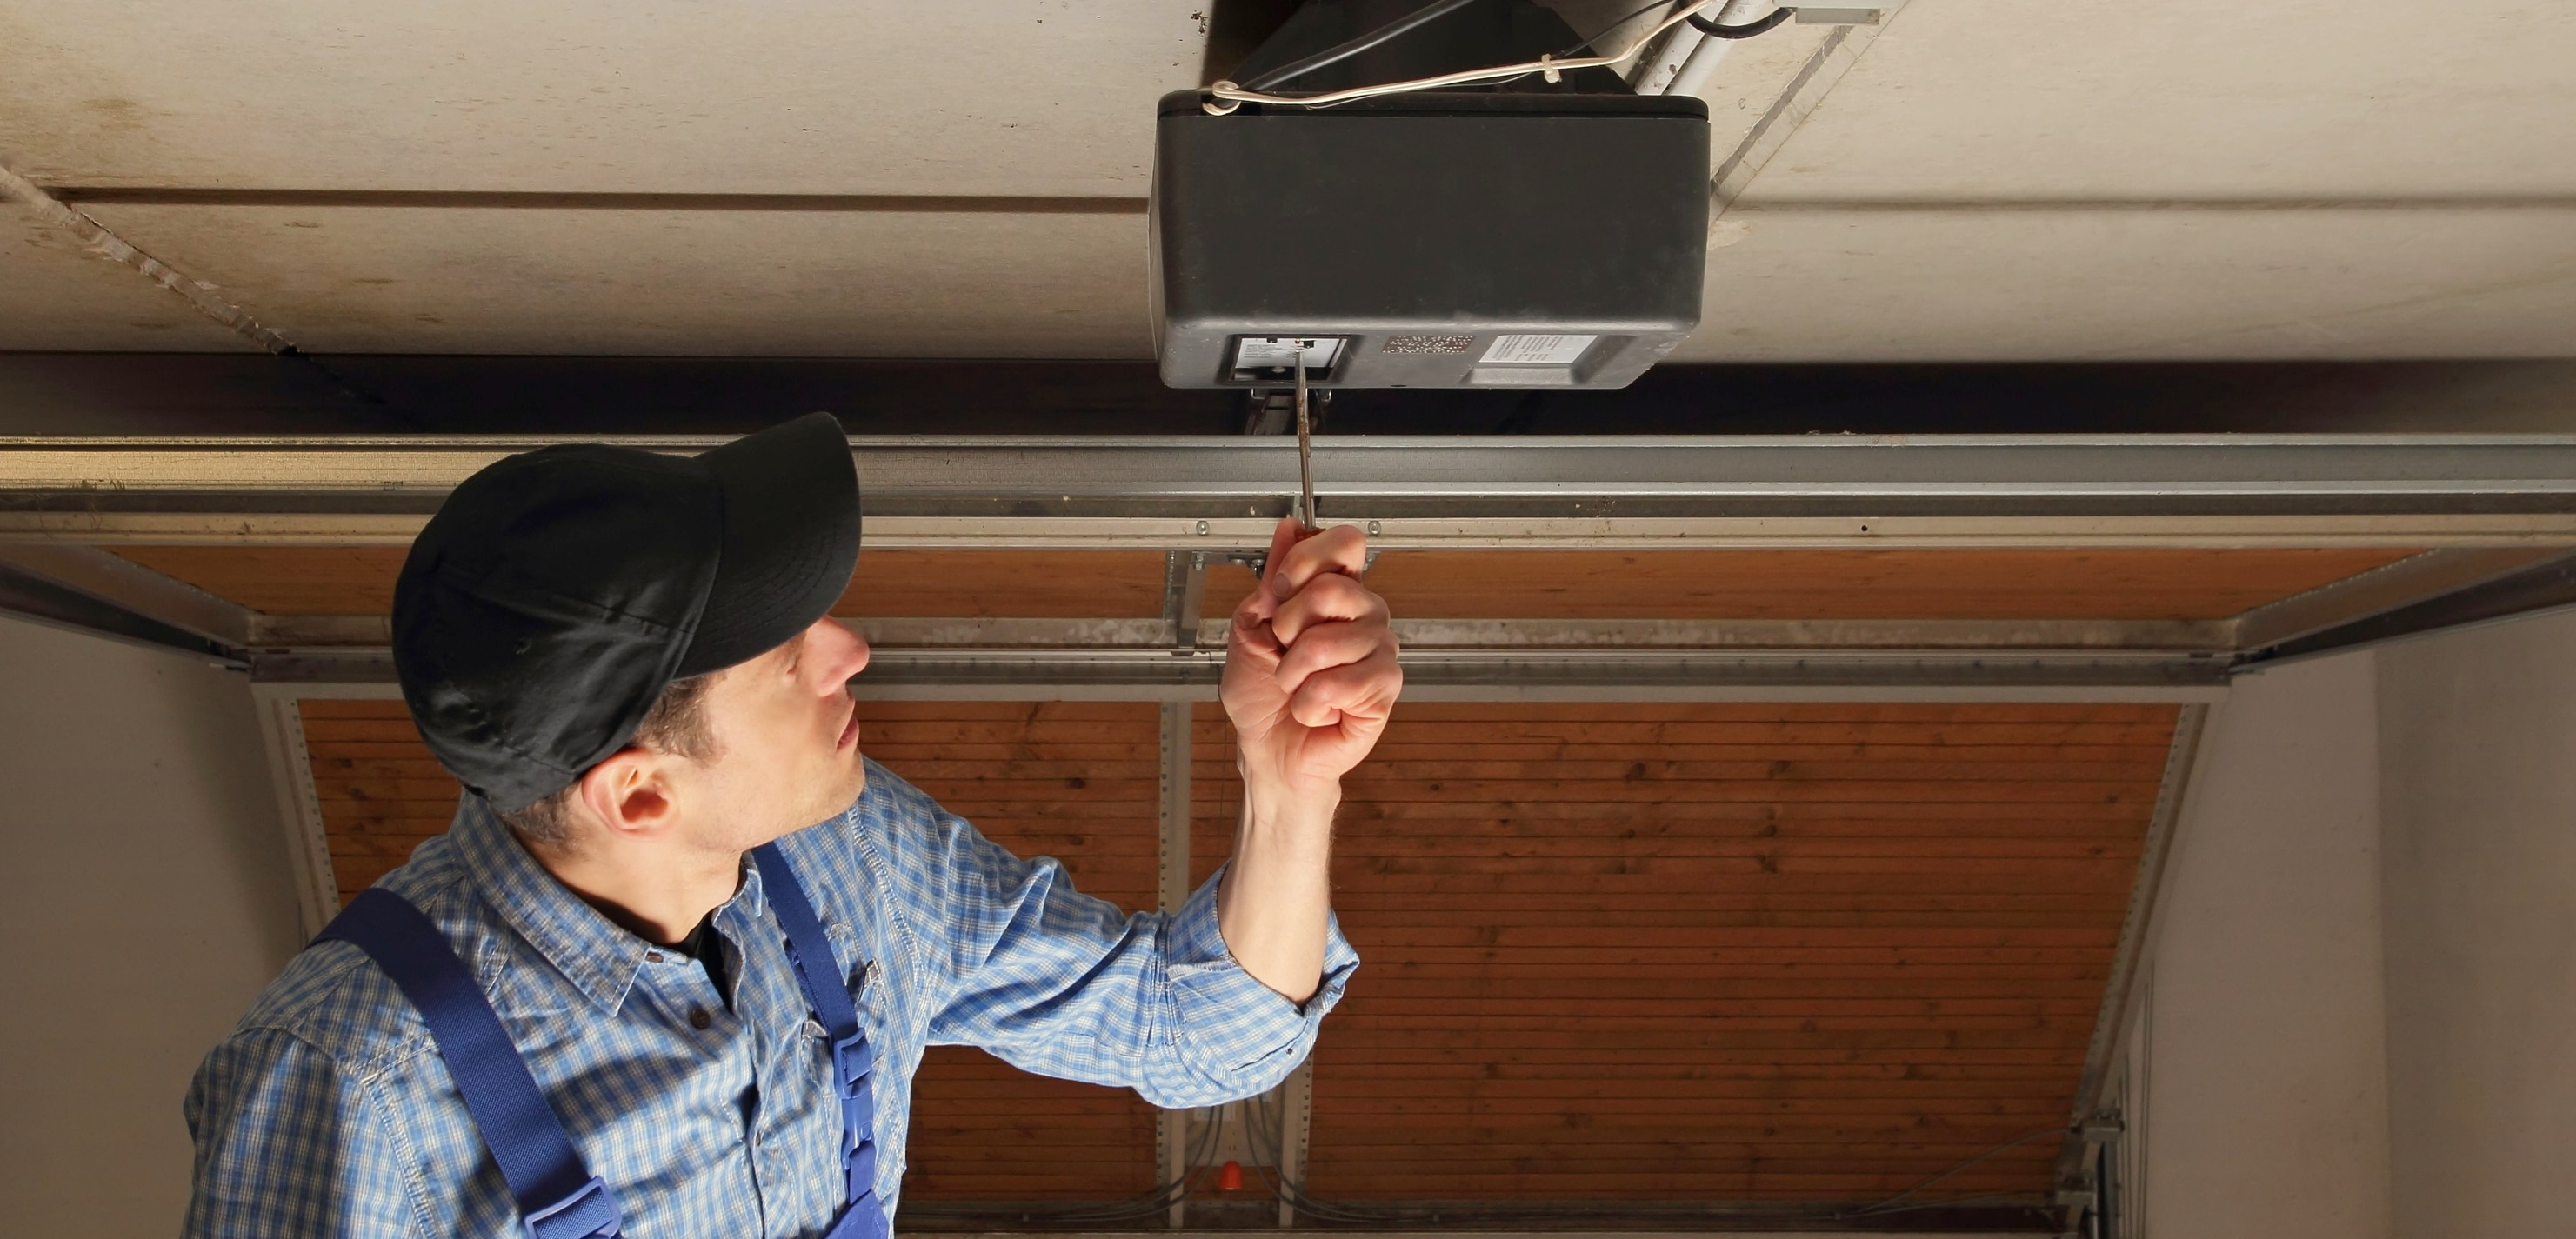 Diy Garage Door Opener Installation Here Are Some Tips From The Experts Interior Decoration